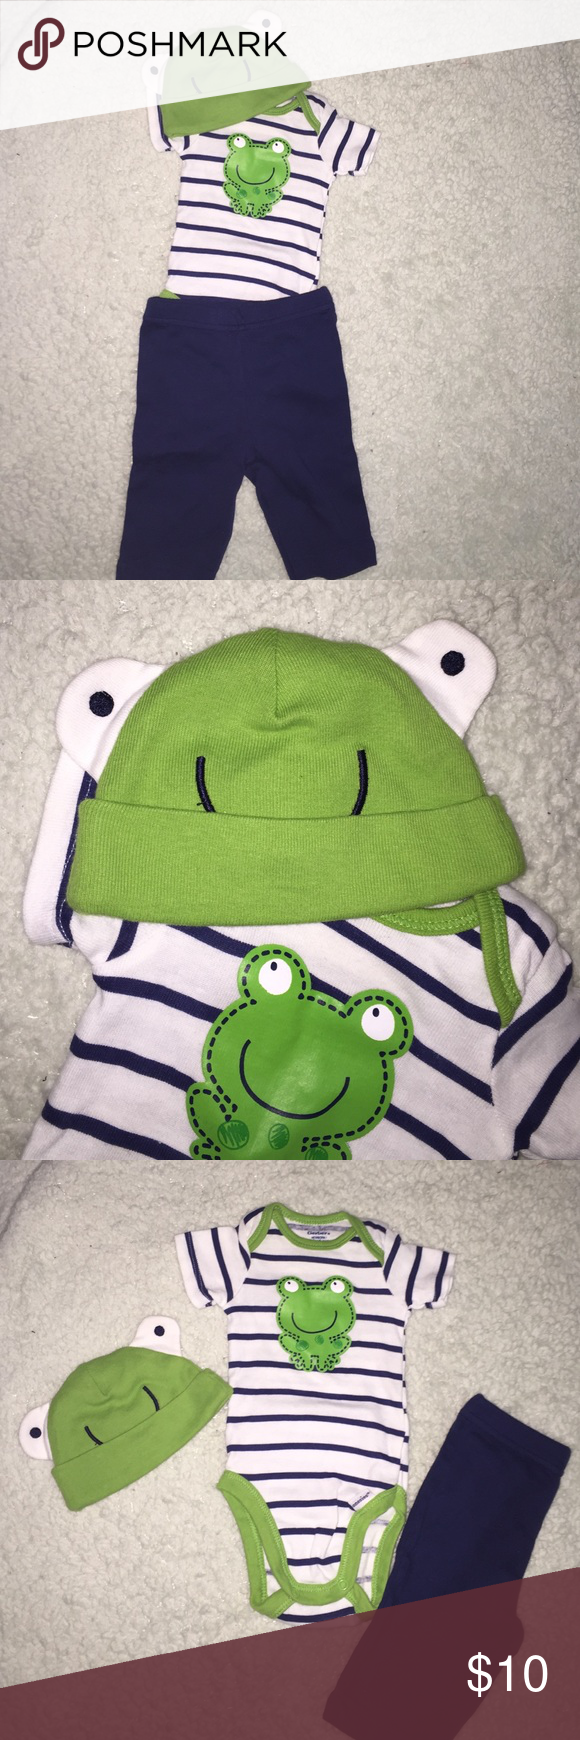 3 piece newborn frog themed matching outfit set Super cute!!! I LOVED this outfit on my son. Perfect condition. Like new. Only worn once. Navy blue and green. Size newborn Gerber Matching Sets